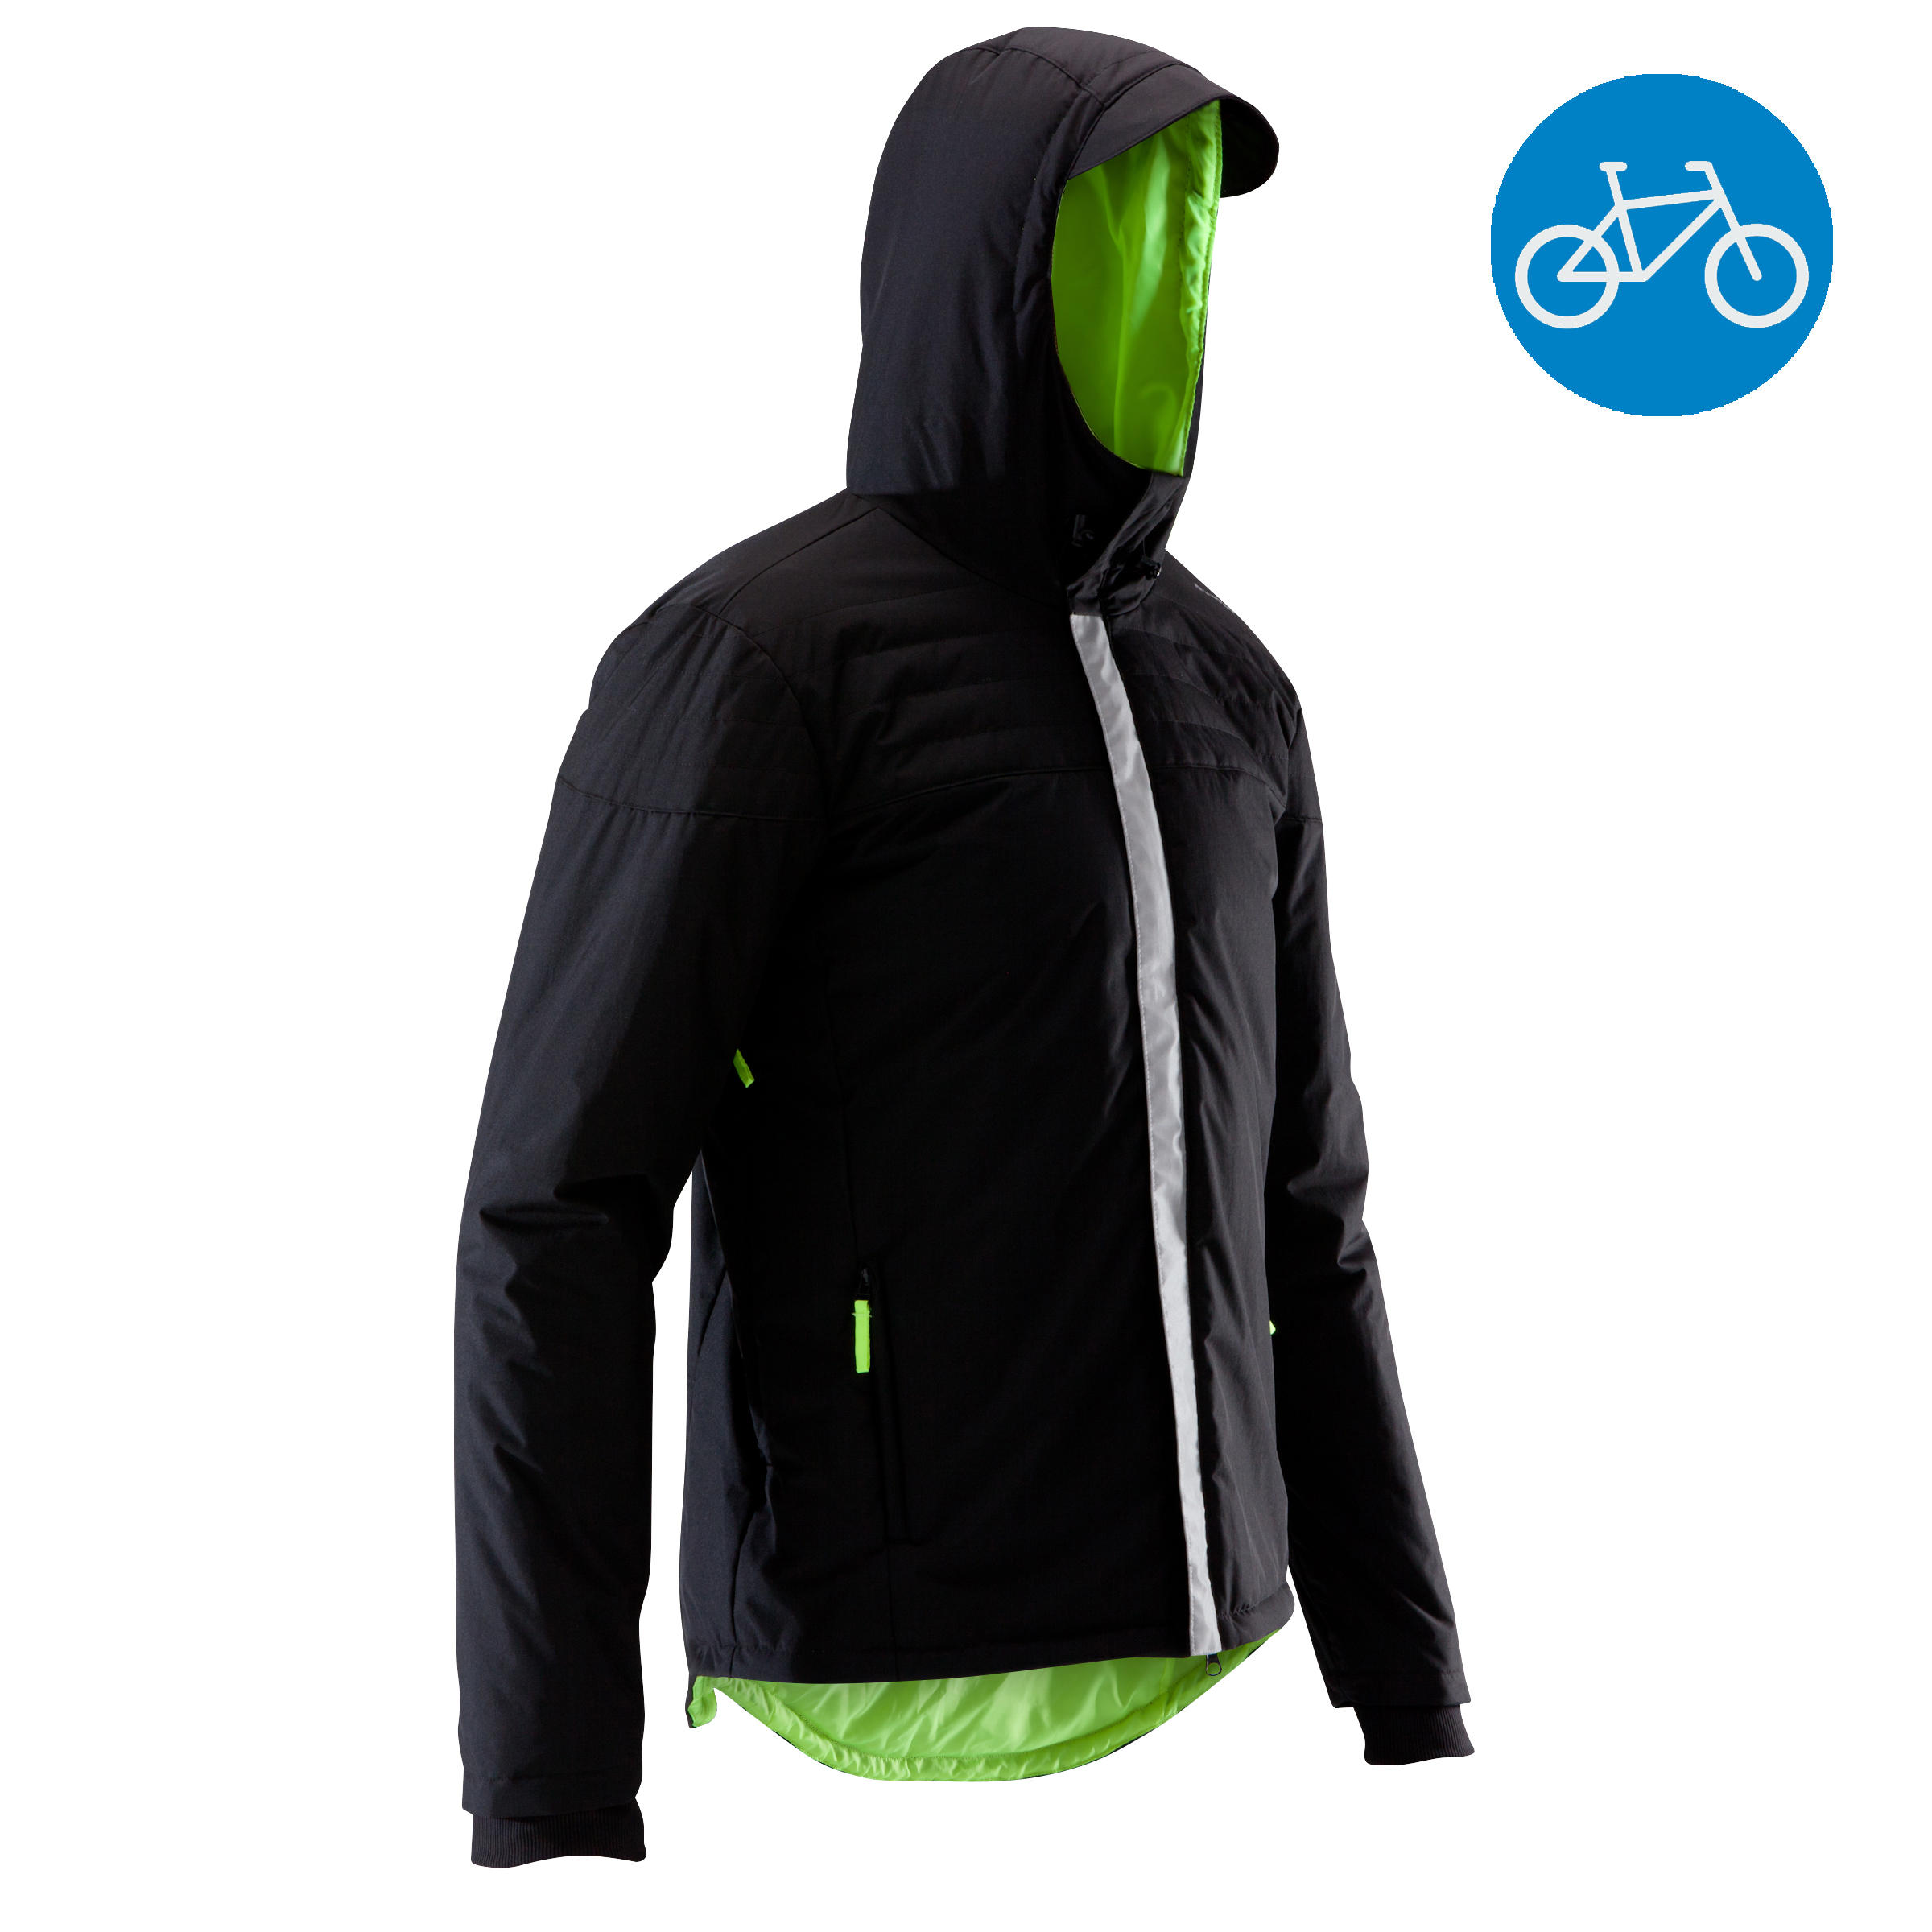 900 Warm Cycling Rain Jacket - Black